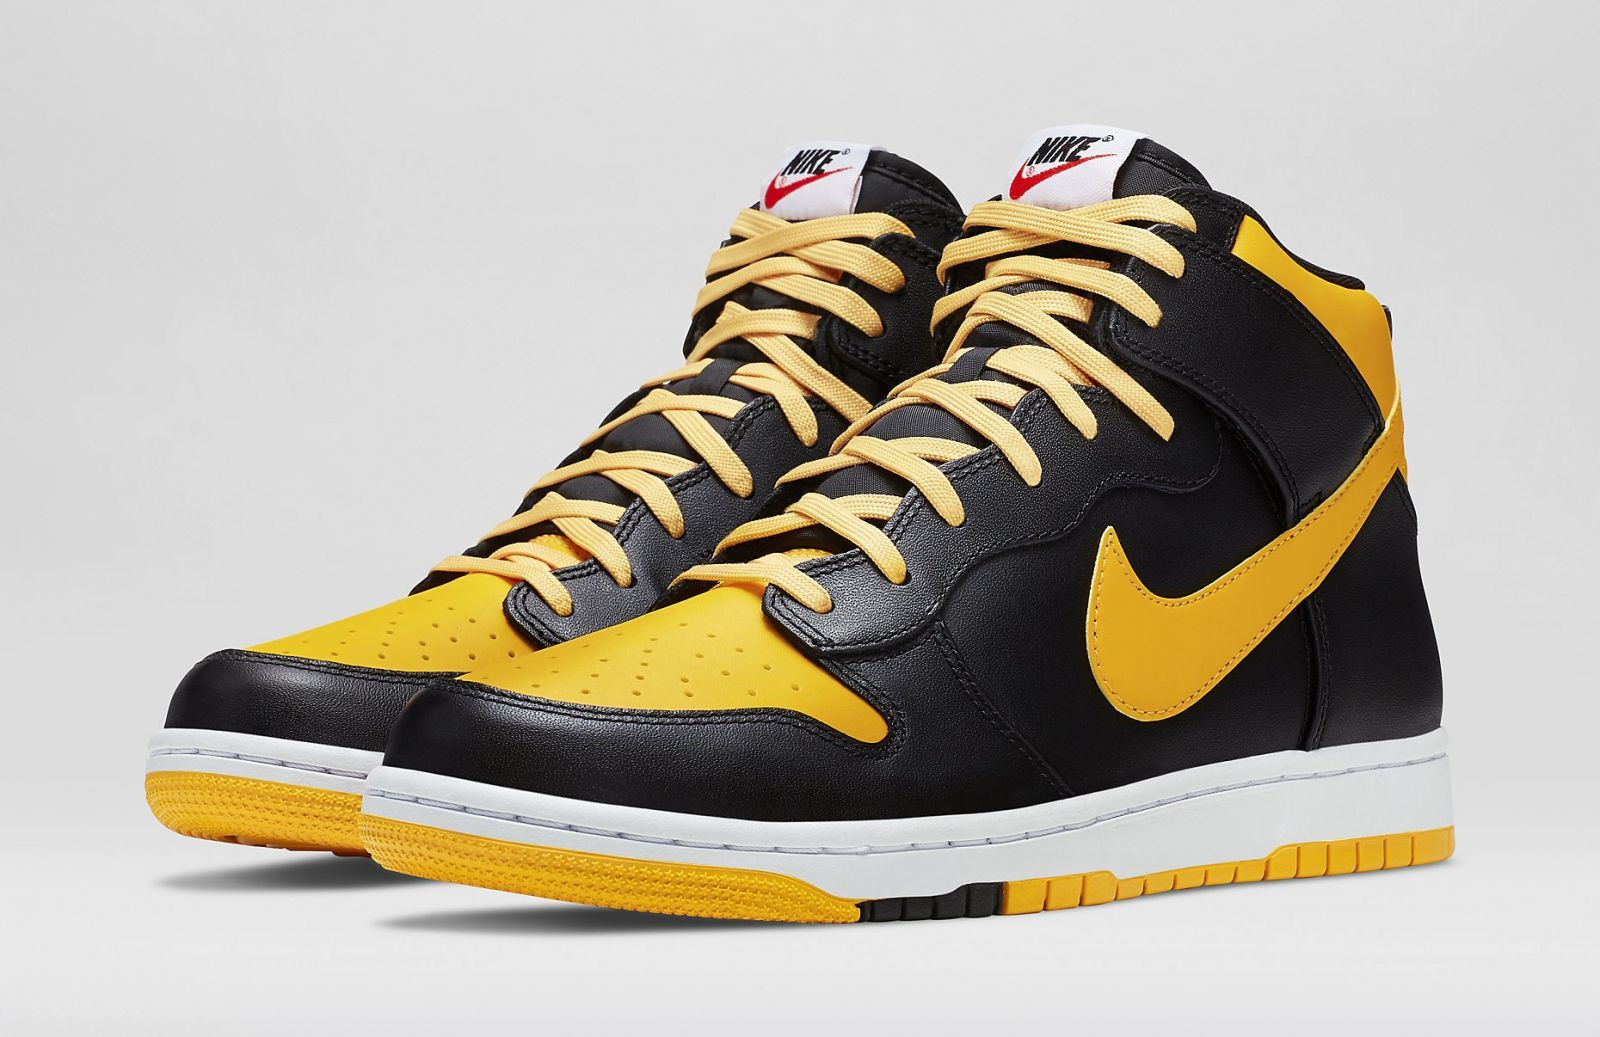 Nike's CMFT Dunk High build with an enticing, Jordan-inspired colorway.